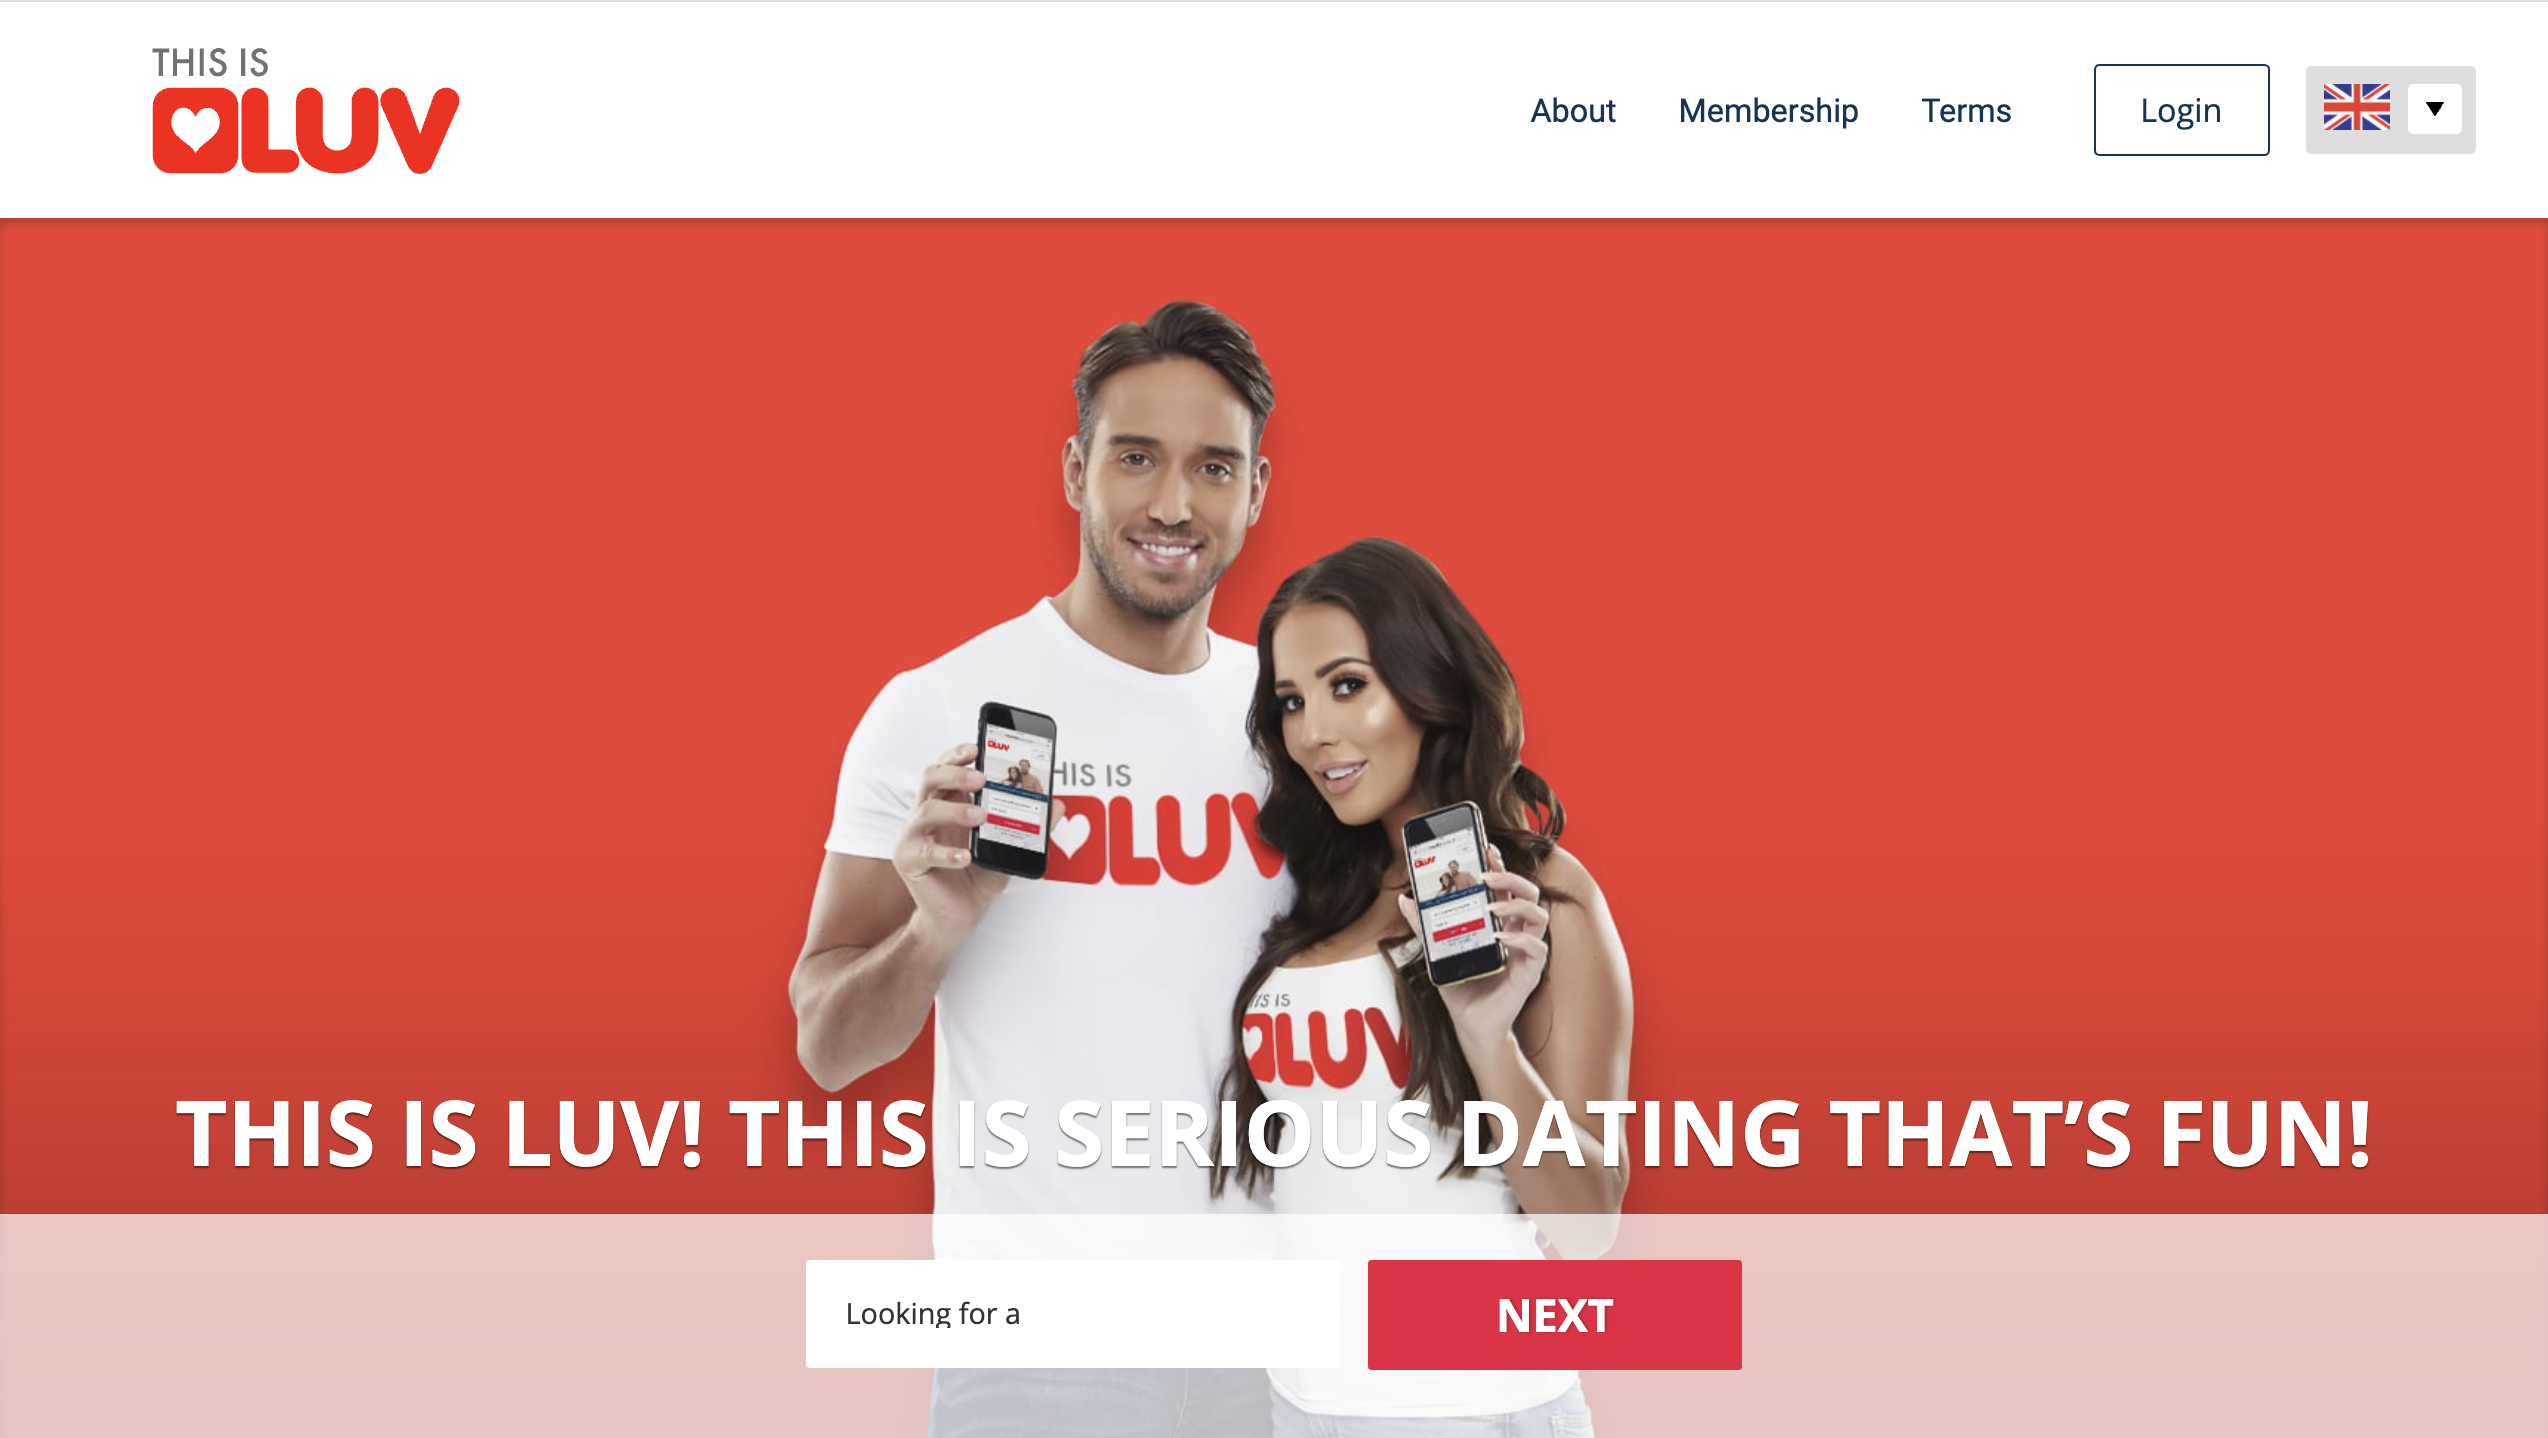 Dating Site, This is Luv, From Towie's James Lock and Yazmin Oukhellou